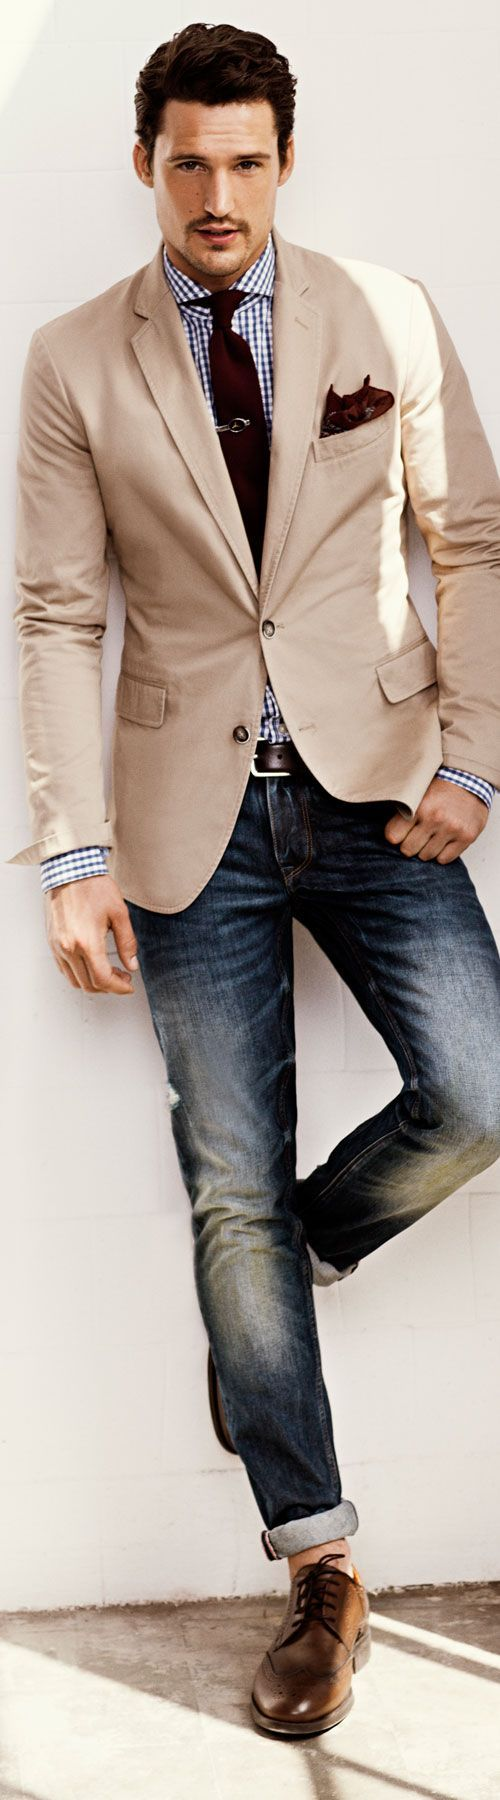 Shop this look for $307:  http://lookastic.com/men/looks/jeans-and-belt-and-brogues-and-pocket-square-and-tie-and-blazer-and-dress-shirt/1529  — Navy Jeans  — Brown Leather Belt  — Brown Leather Brogues  — Burgundy Paisley Pocket Square  — Burgundy Tie  — Beige Blazer  — White and Navy Gingham Dress Shirt